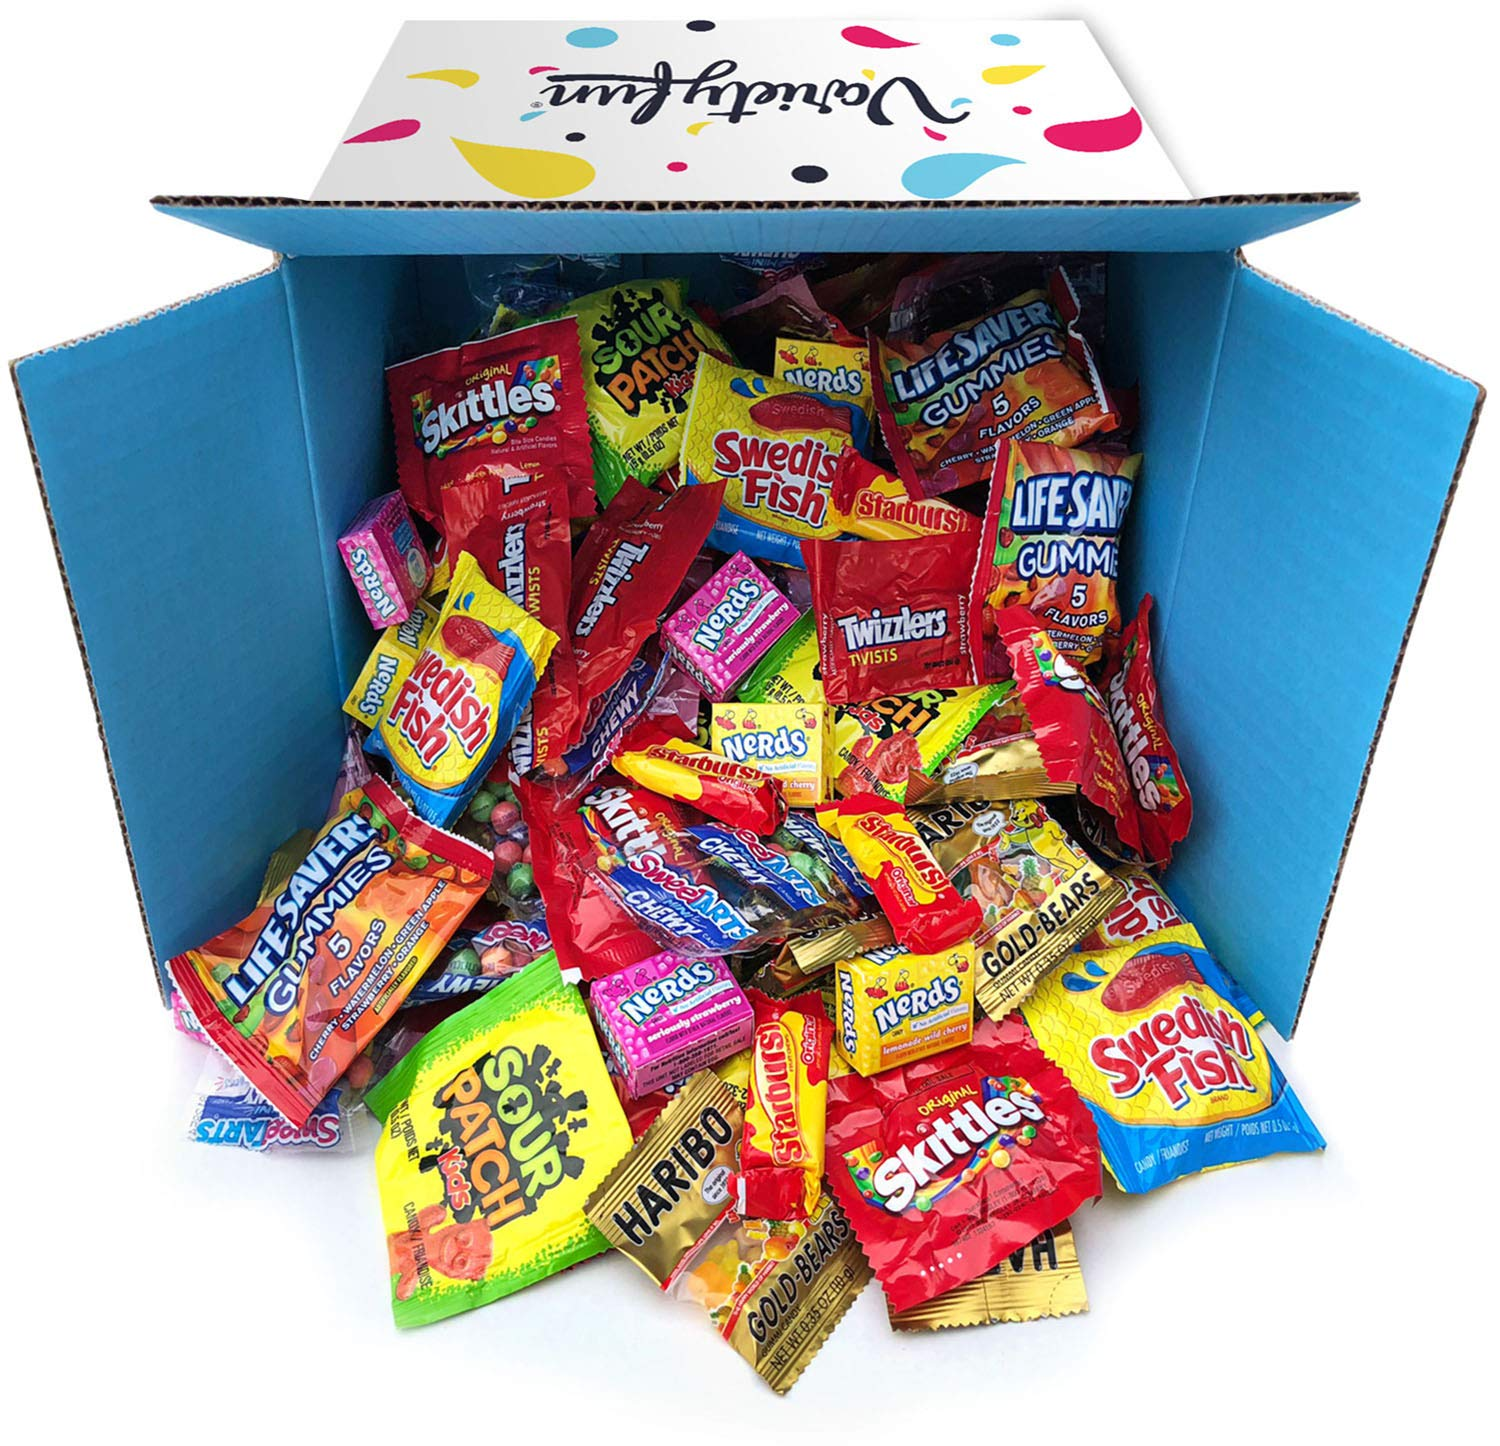 Candy Party Mix Bulk Bag of Skittles Swedish Fish Nerds Haribo Gummy Sour Patch Twizzlers Starburst Mike and Ike Variety Fun Peppermints n' more! by Variety Fun Net wt (288 oz) by Custom Varietea